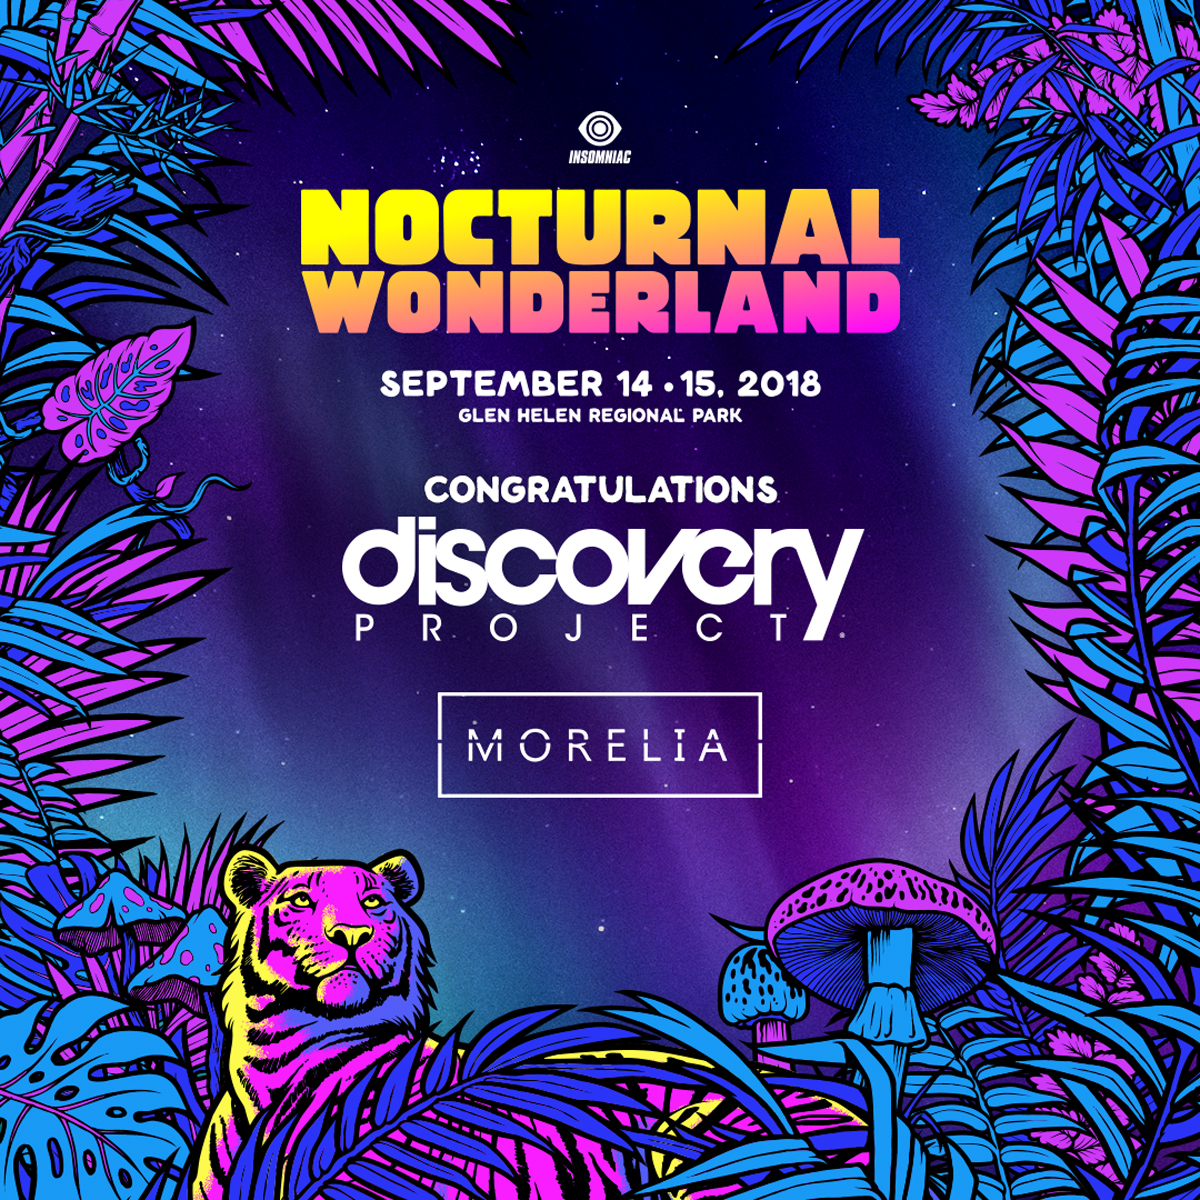 Introducing the Nocturnal Wonderland 2018 Discovery Project Winner